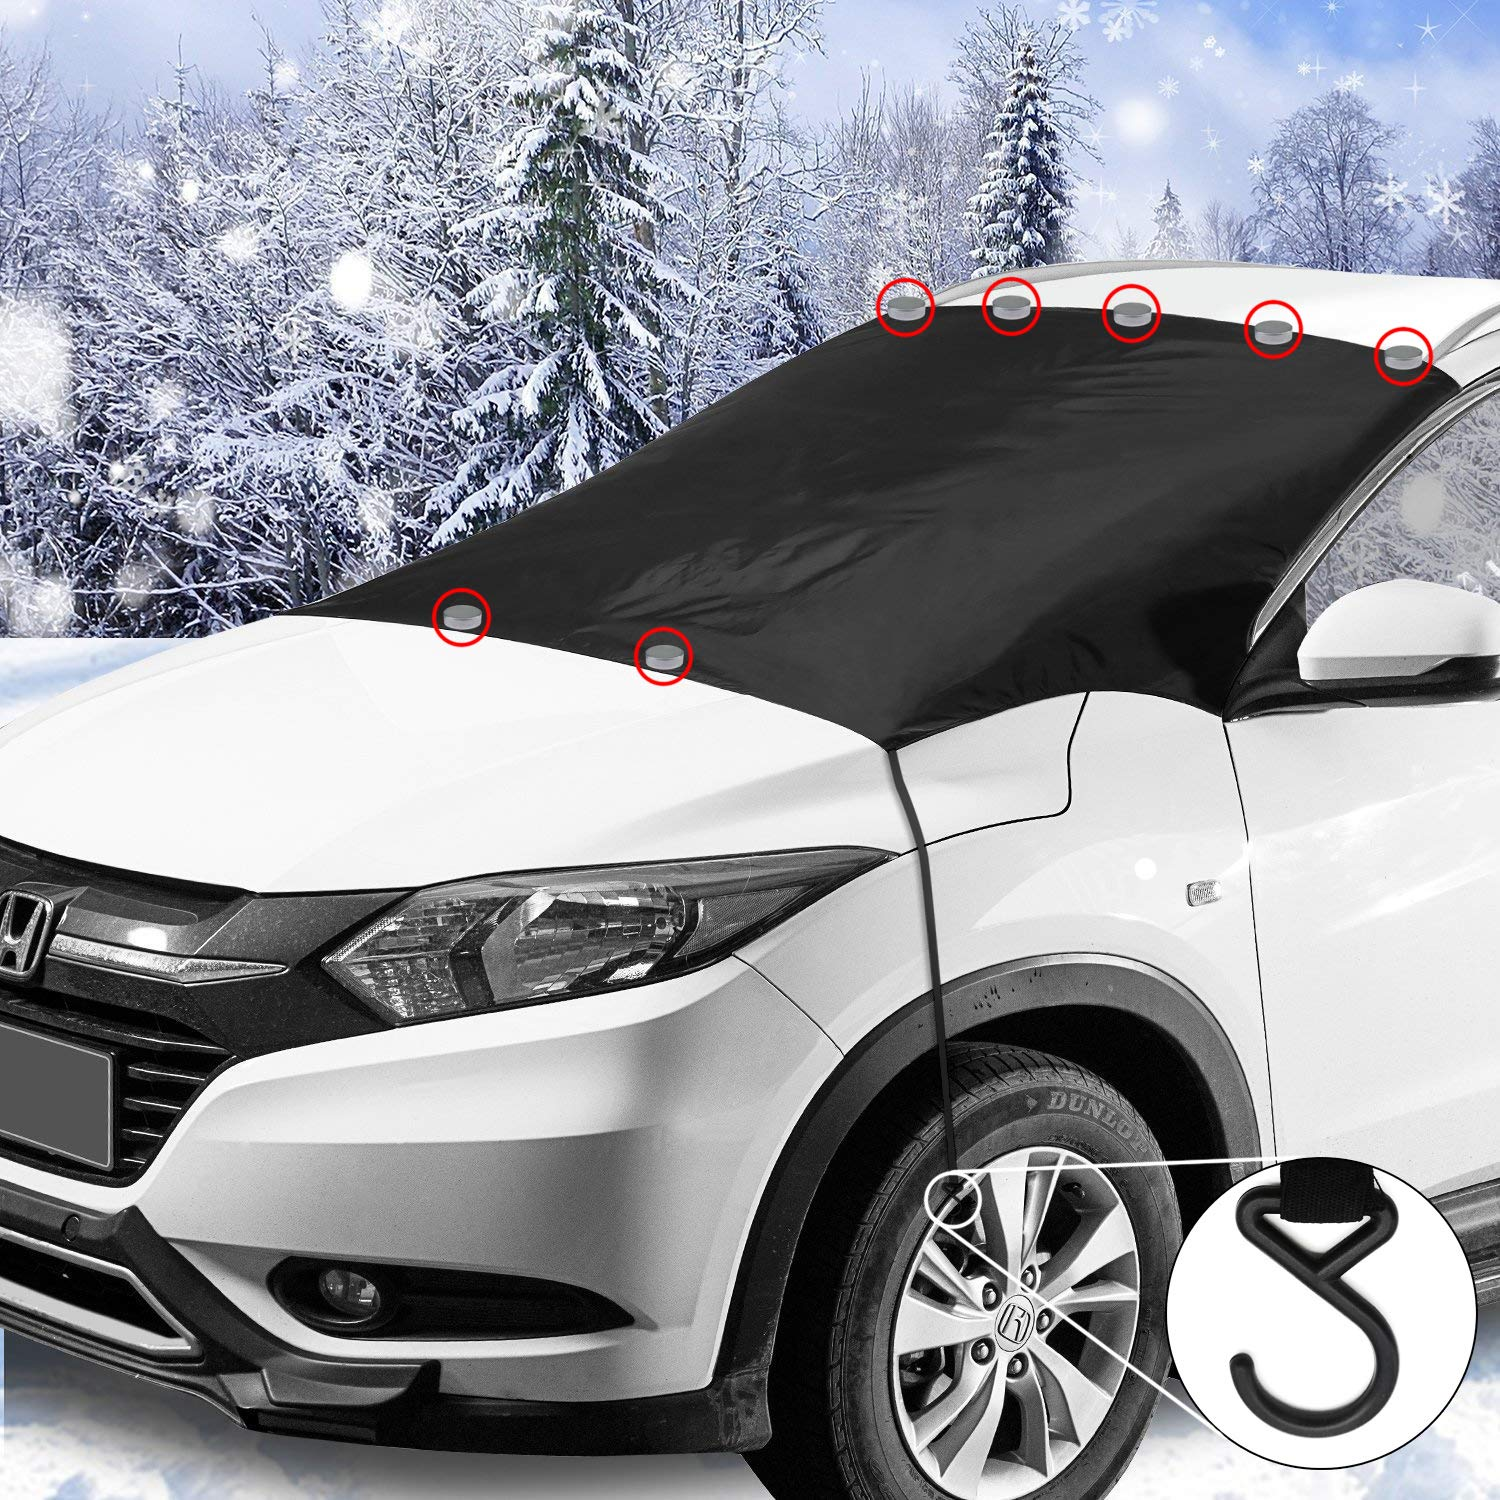 GREATWILD Magnetic Car Windscreen Cover Windshield Cover Window Covers for Frost Snow Ice Sun Shade with 7 Magnets 2 Hooks Oversized for SUV Trucks